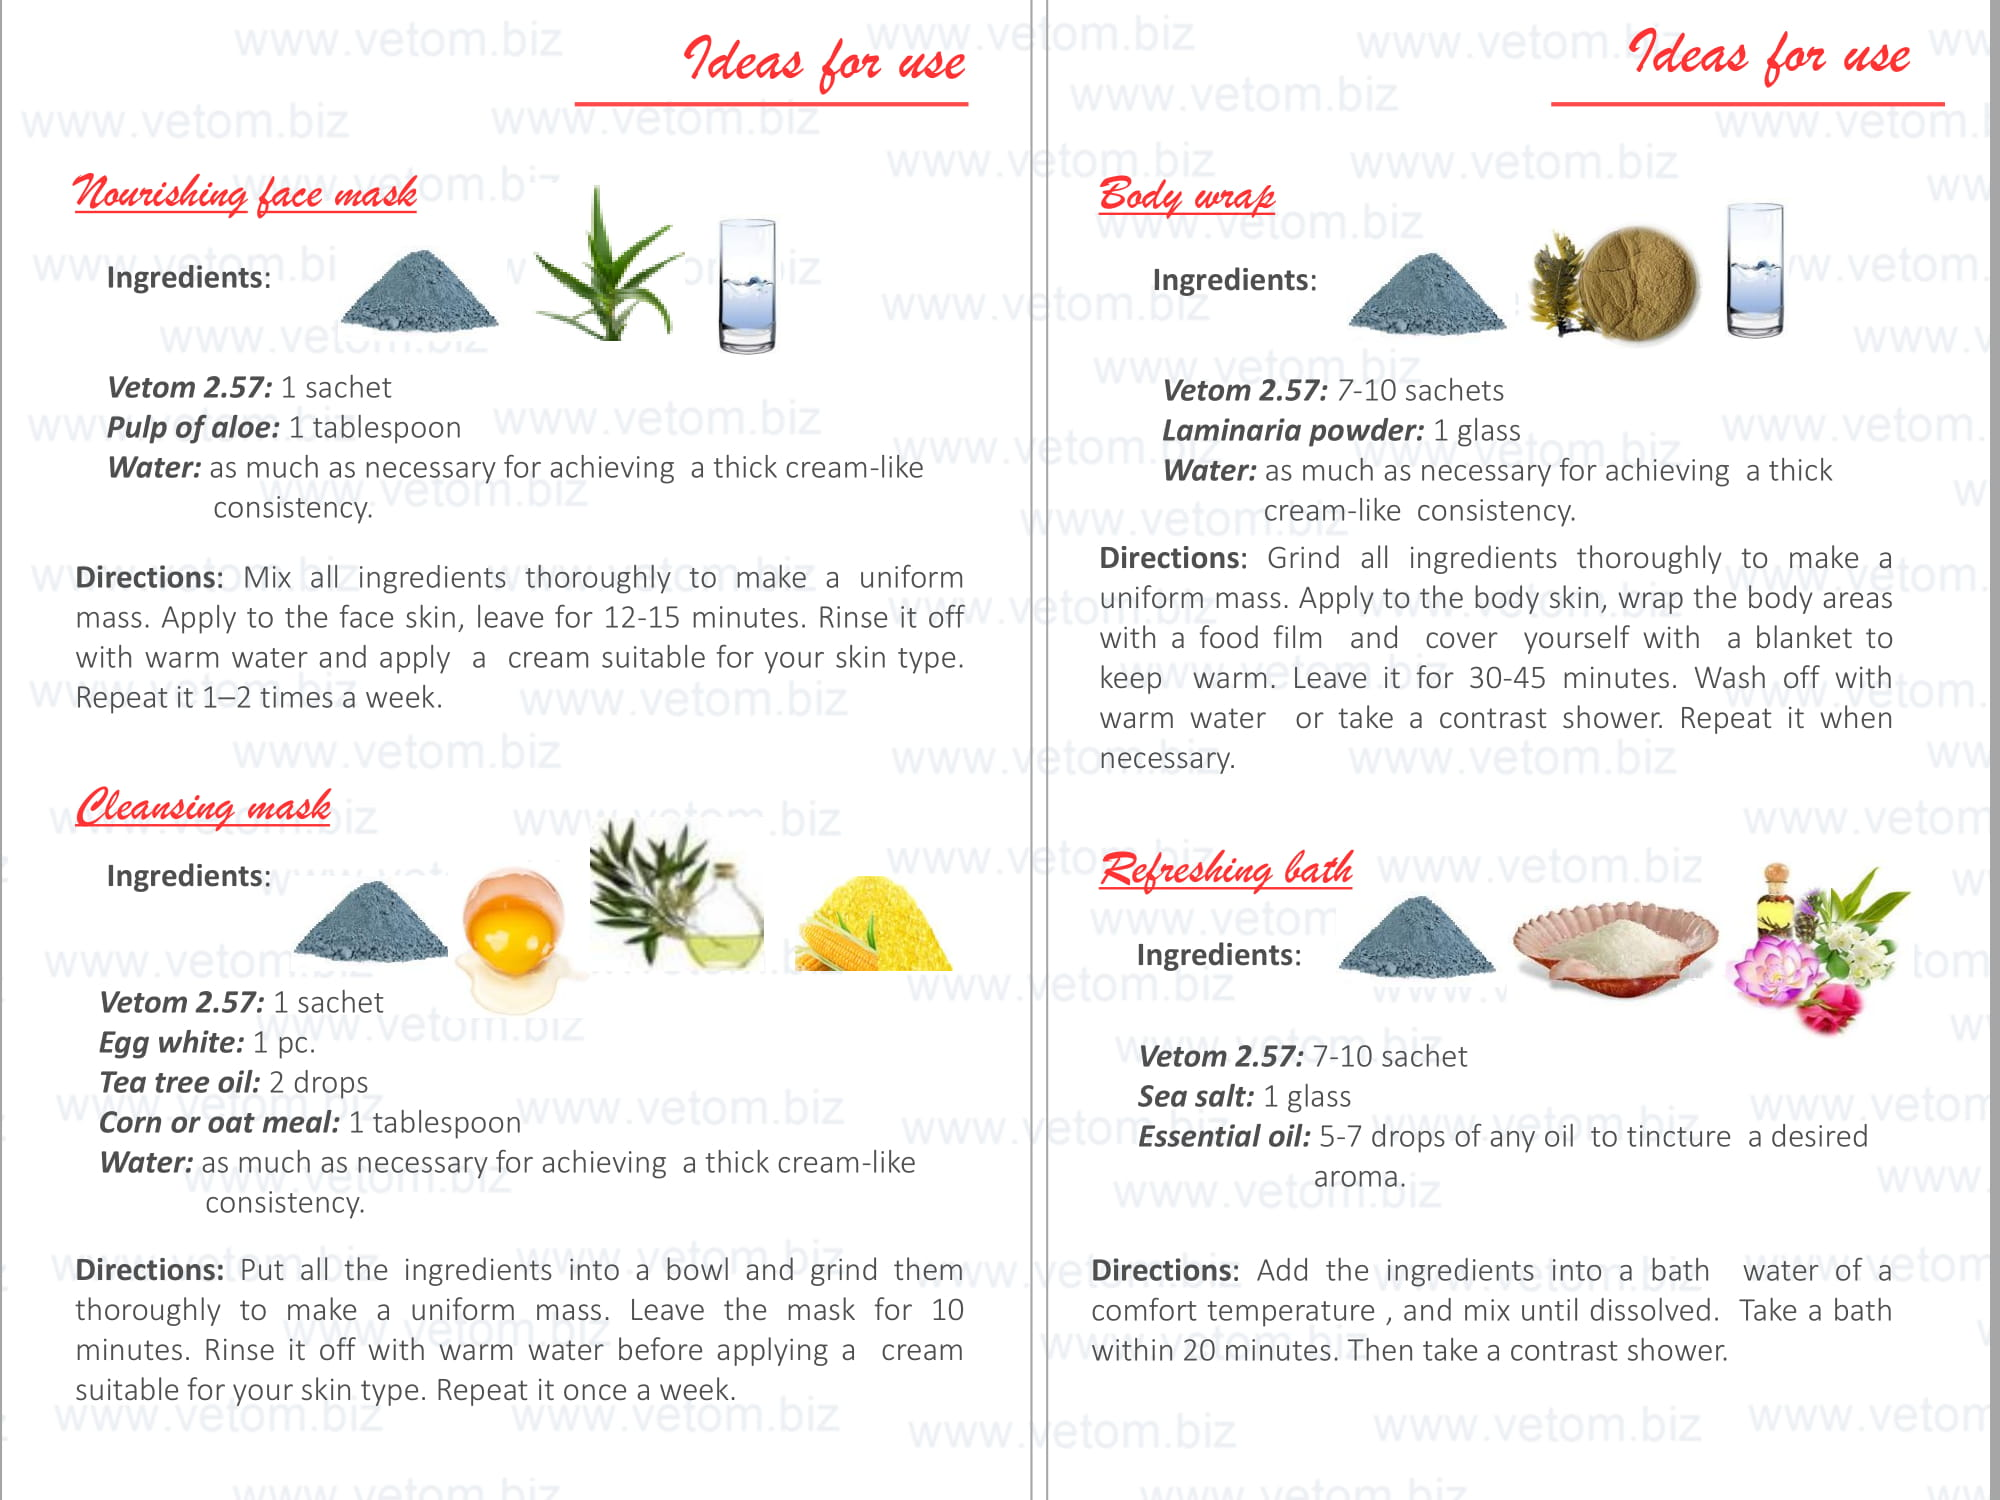 Vetom 2.57 - Blue cosmetic clay. Ideas for use: Nourishing face mask, Cleansing mask, Body wrap, Refreshing bath.